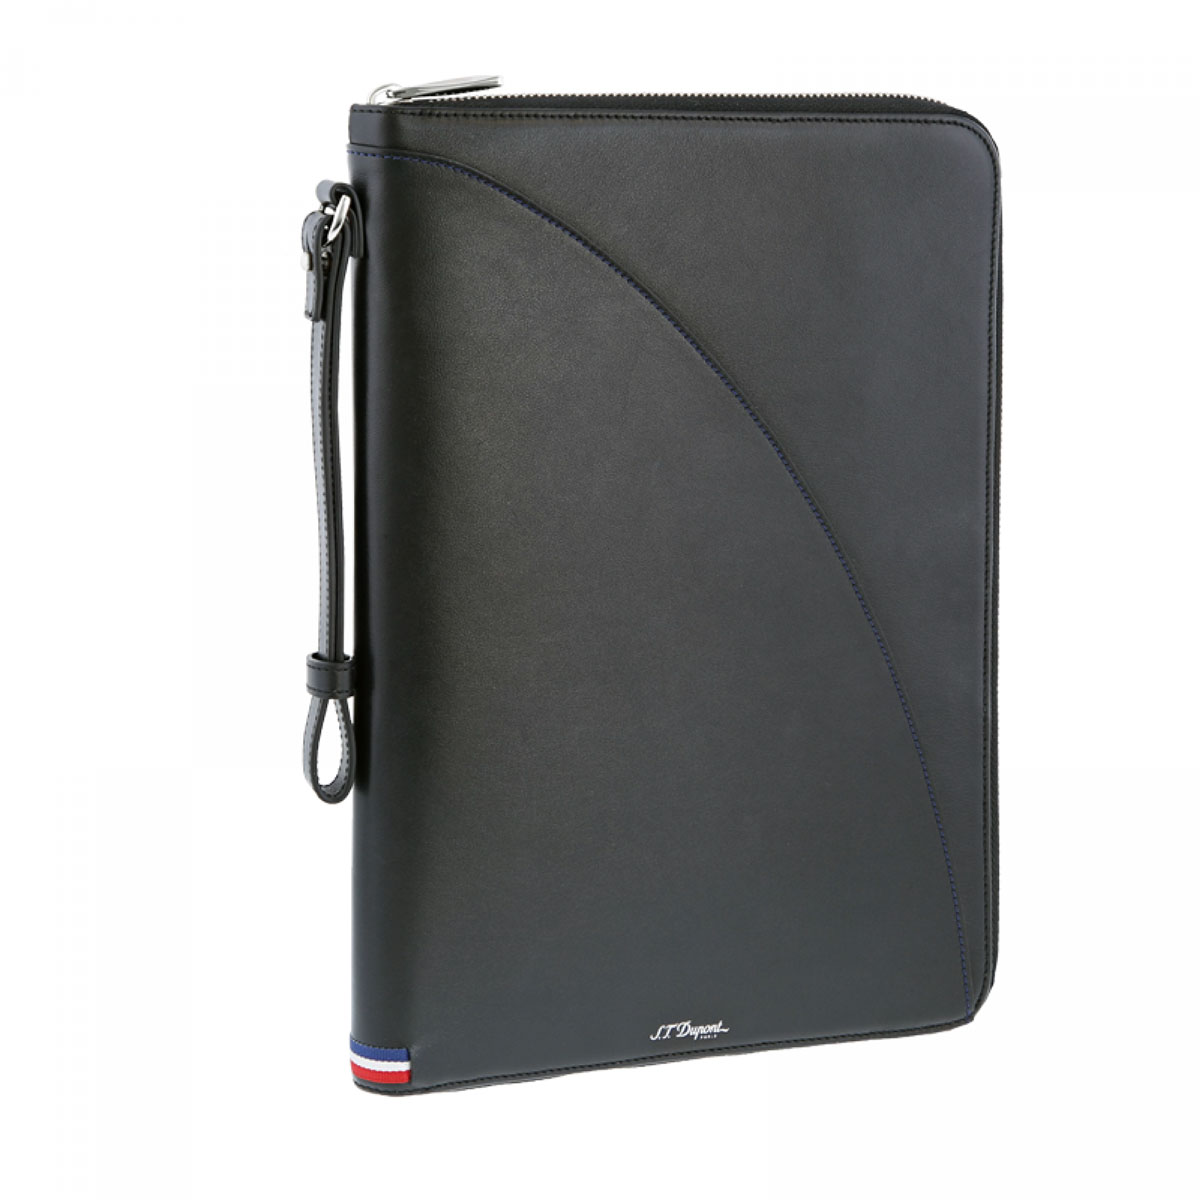 ST Dupont Defi Black Millenium Leather Clutch